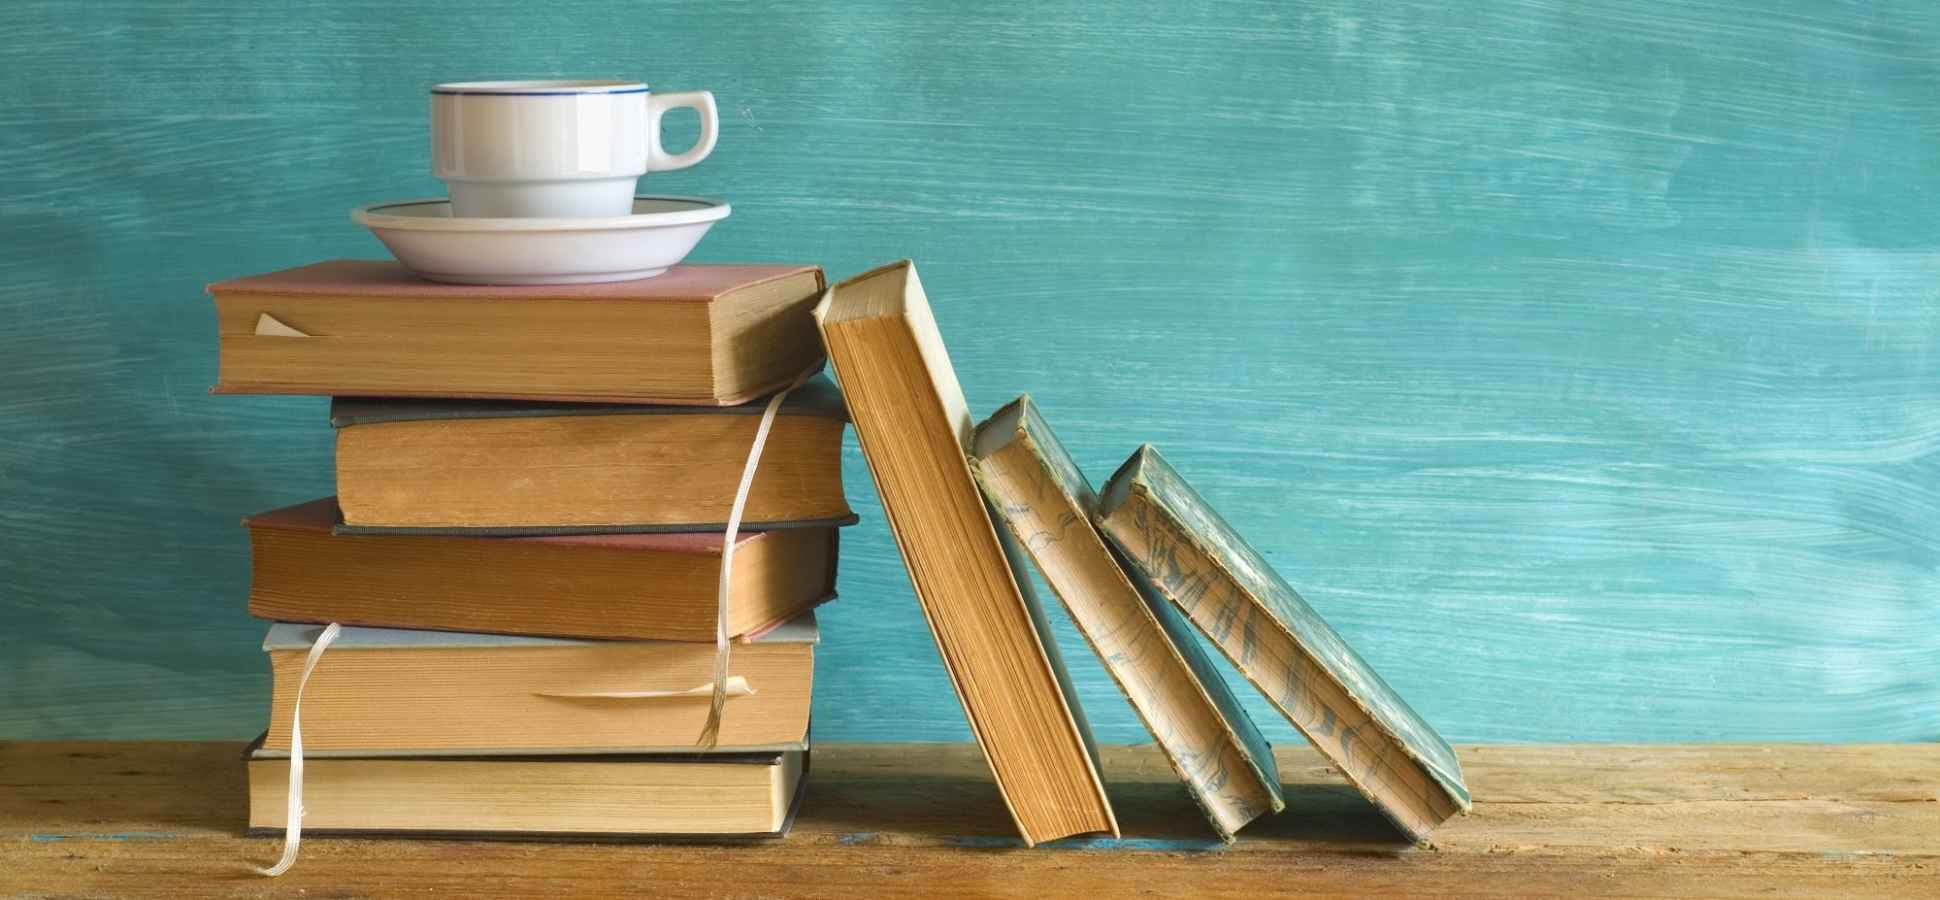 7 Life Skills Everyone Should Learn (and 13 Books That Teach Them)